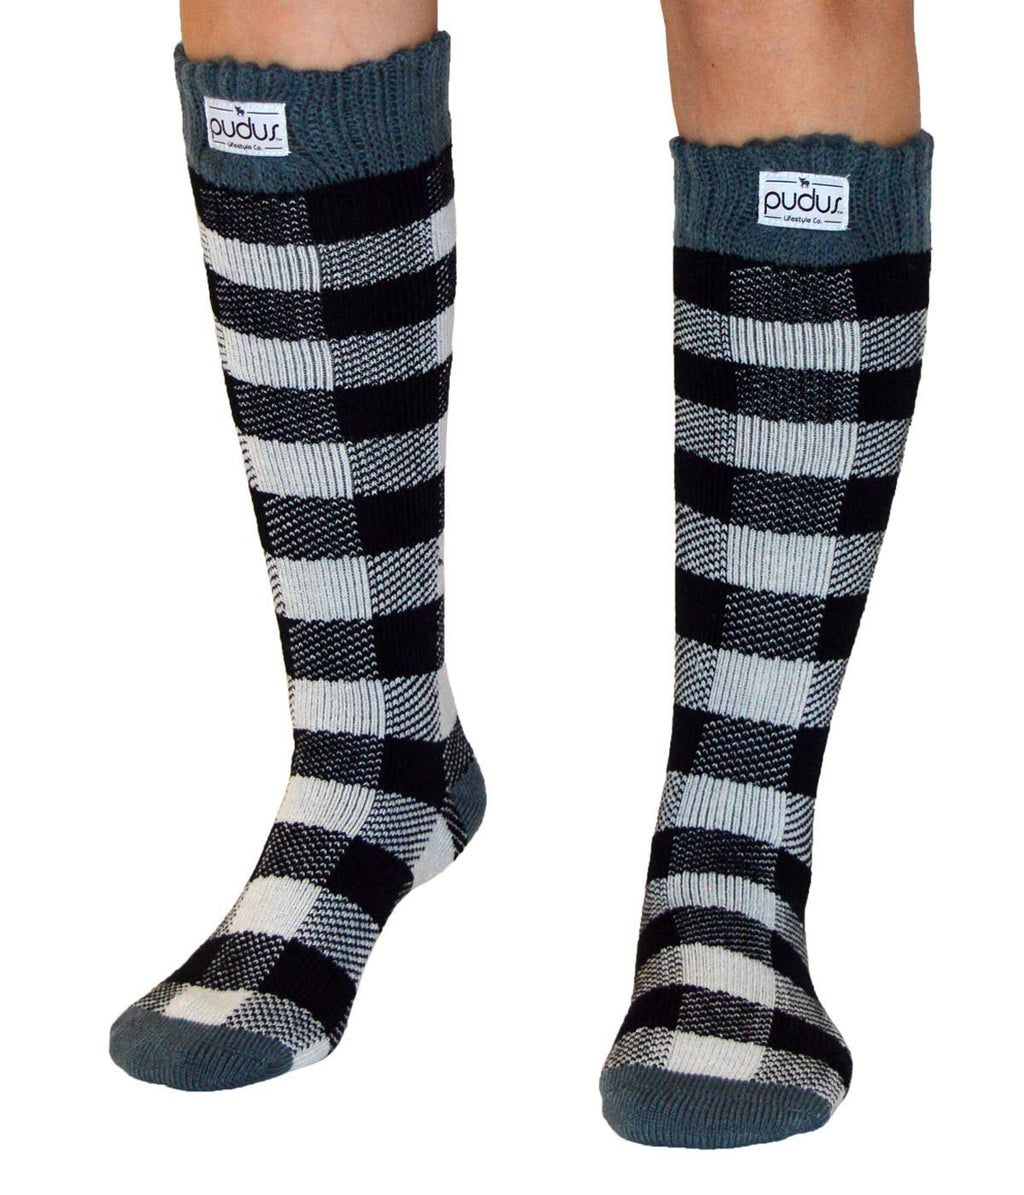 Pudus Womens Warm Tall Boot Socks W 6-10 Fleece-Lined Crew-Length Winter Socks Lumberjack White Tall